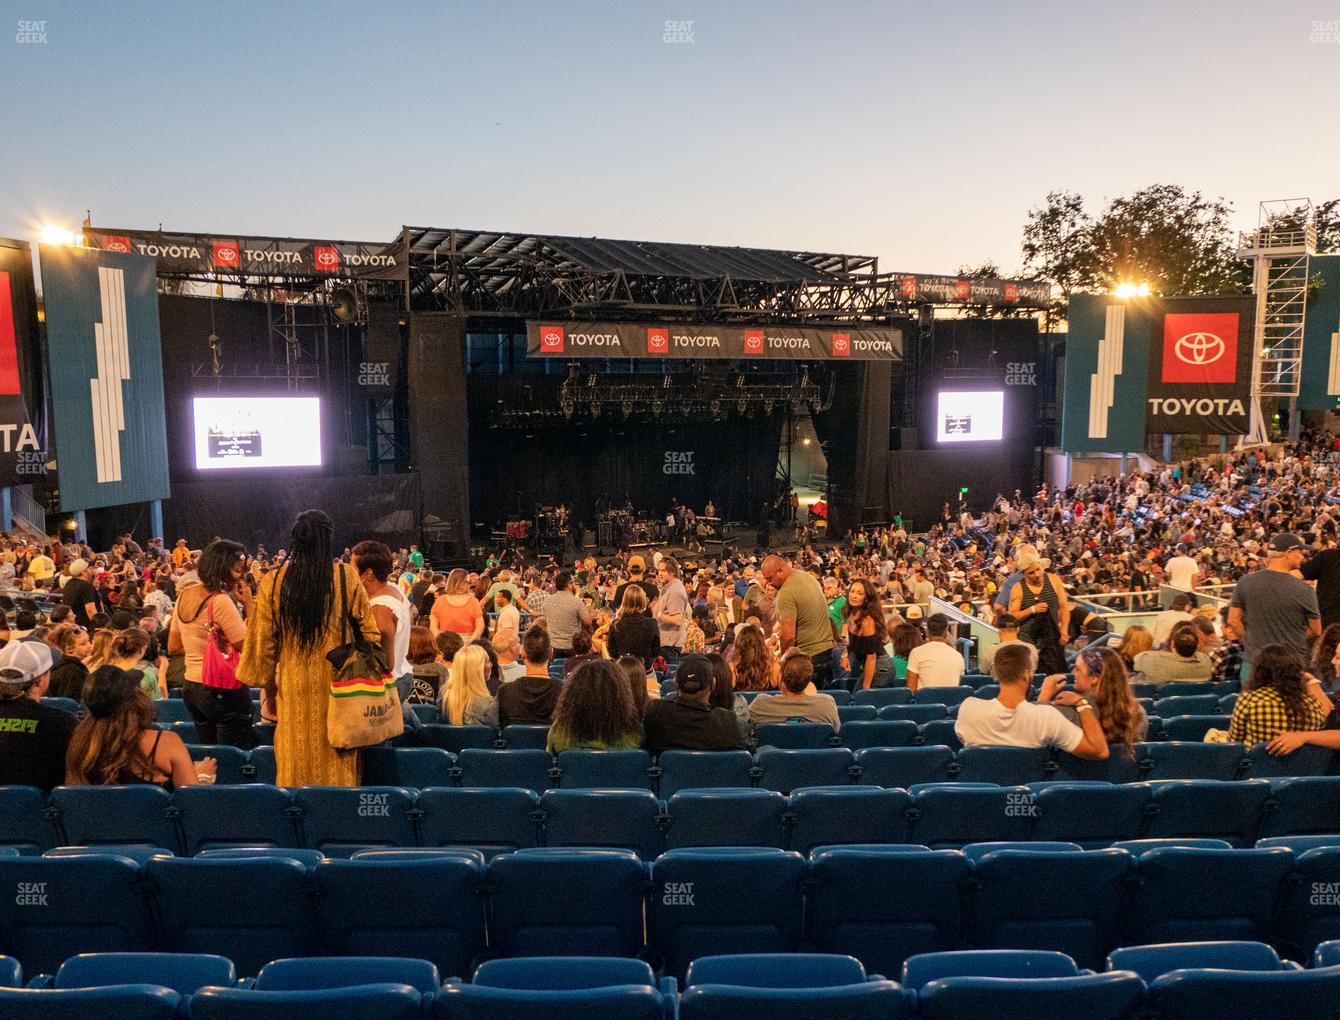 Concert at Pacific Amphitheatre Section 5 View